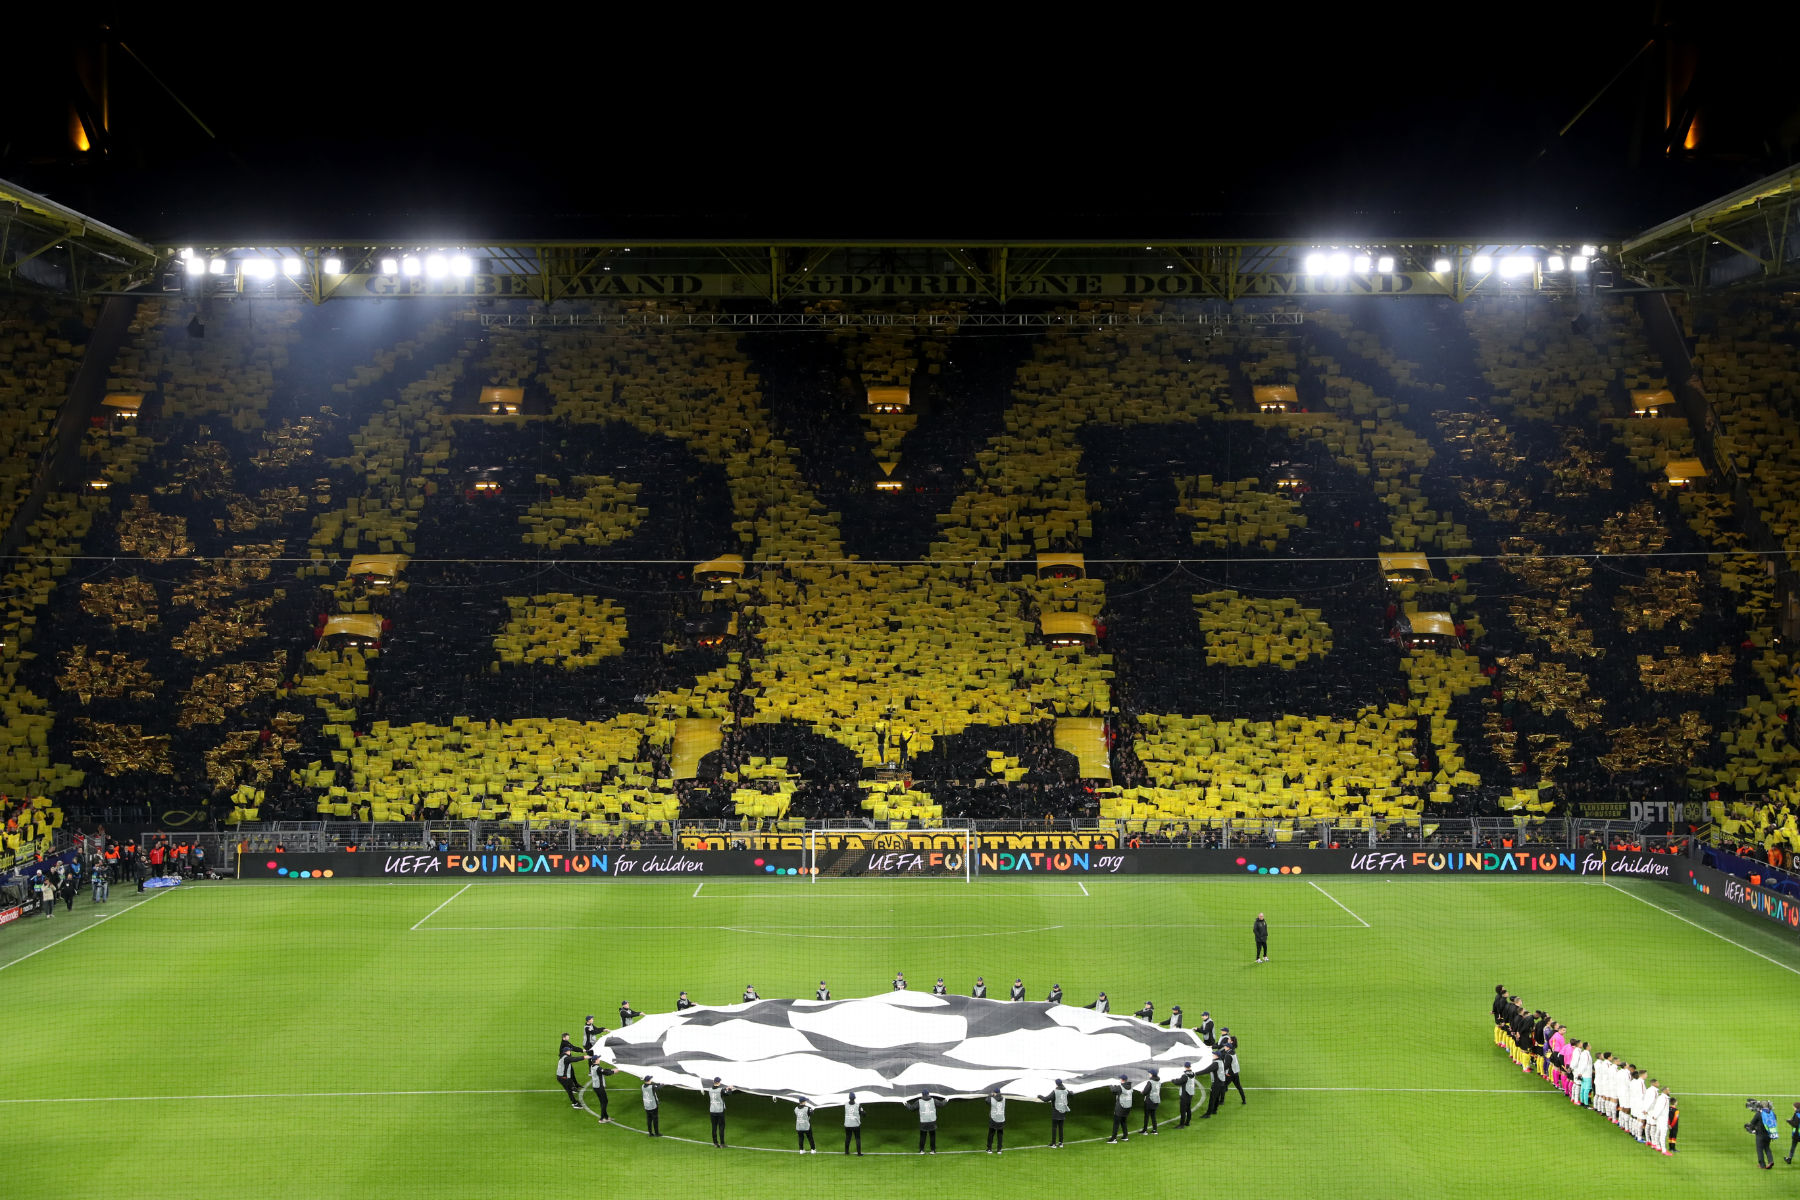 Video: A PSG Fan's View of Dortmund's Notorious Yellow Wall - PSG Talk